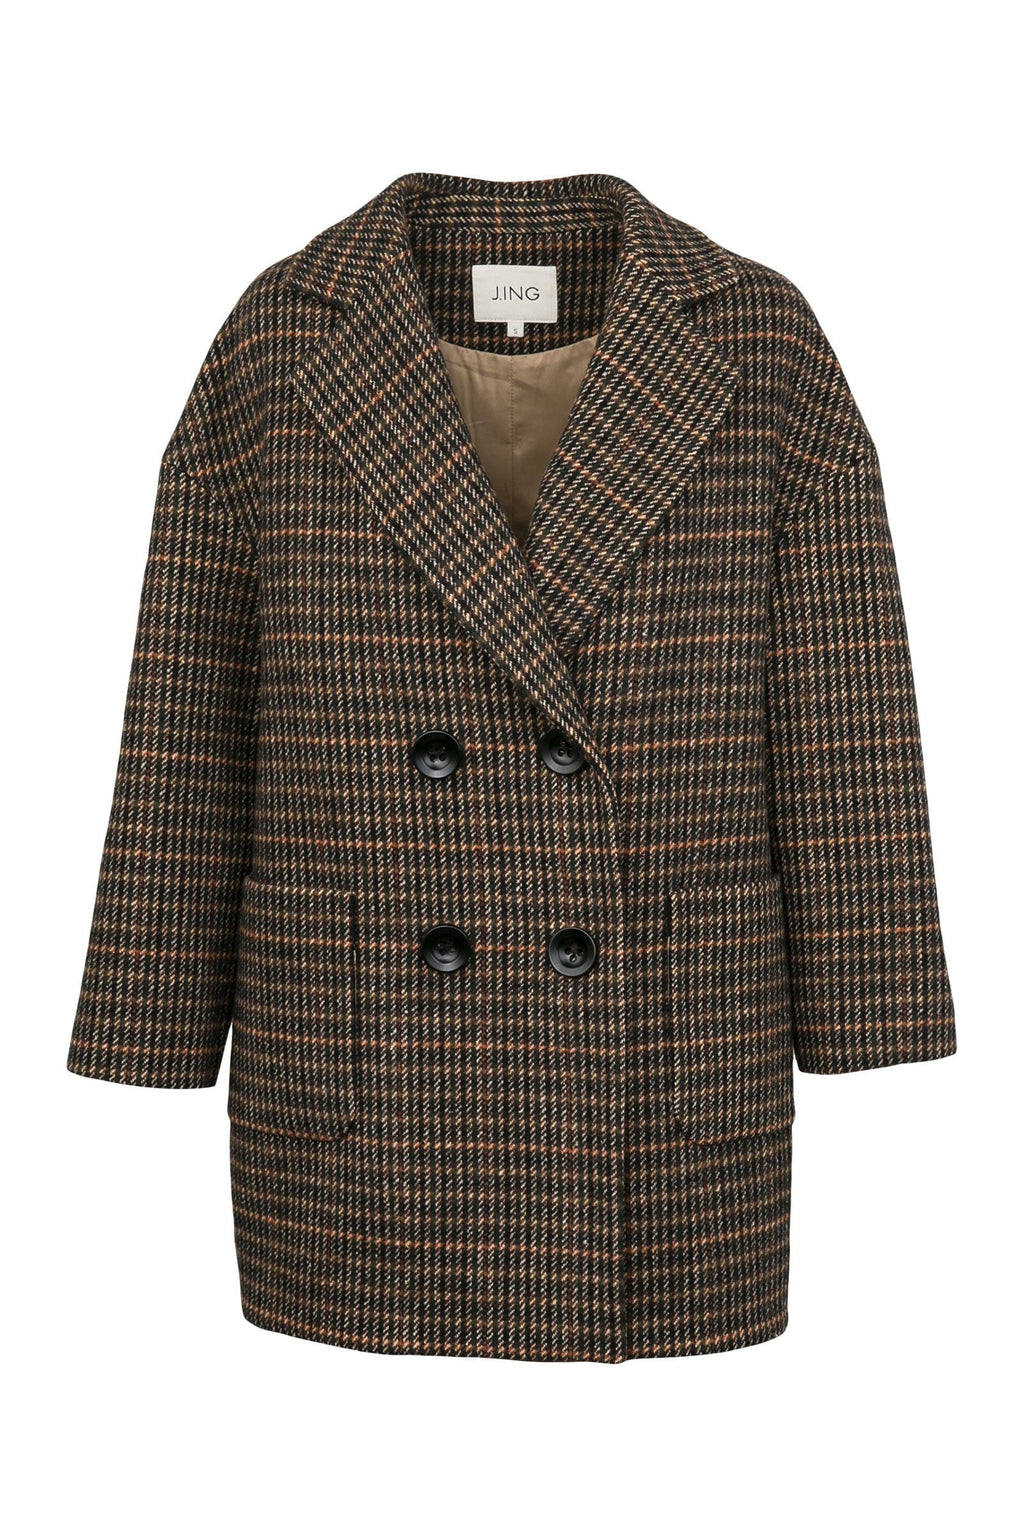 Charles Brown Oversize Pea Coat by J.ING